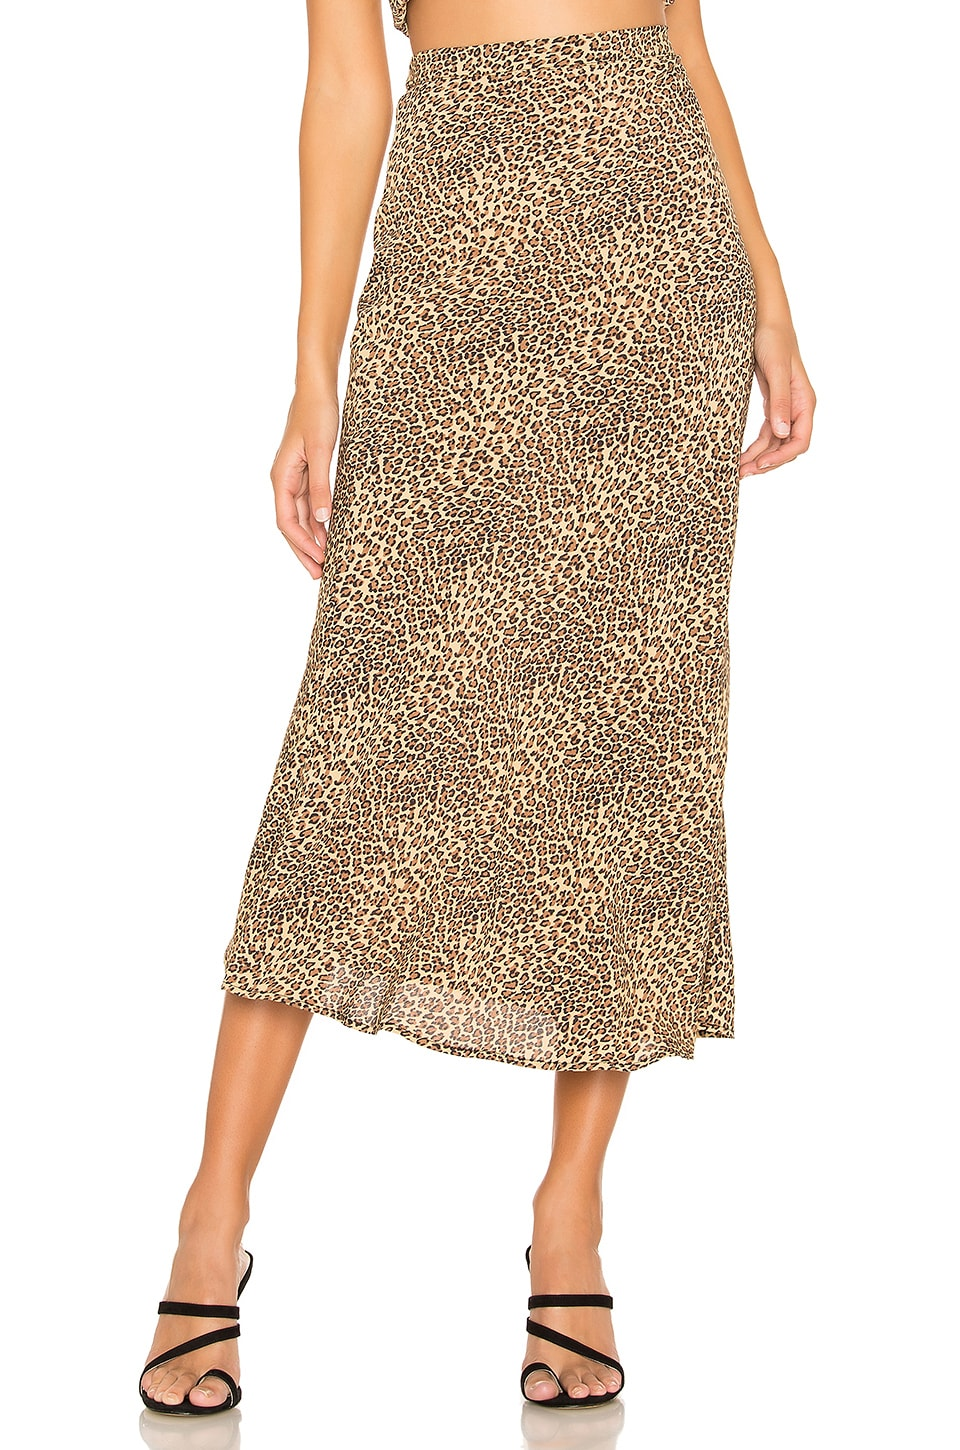 FLYNN SKYE Alice Skirt in Animal Print